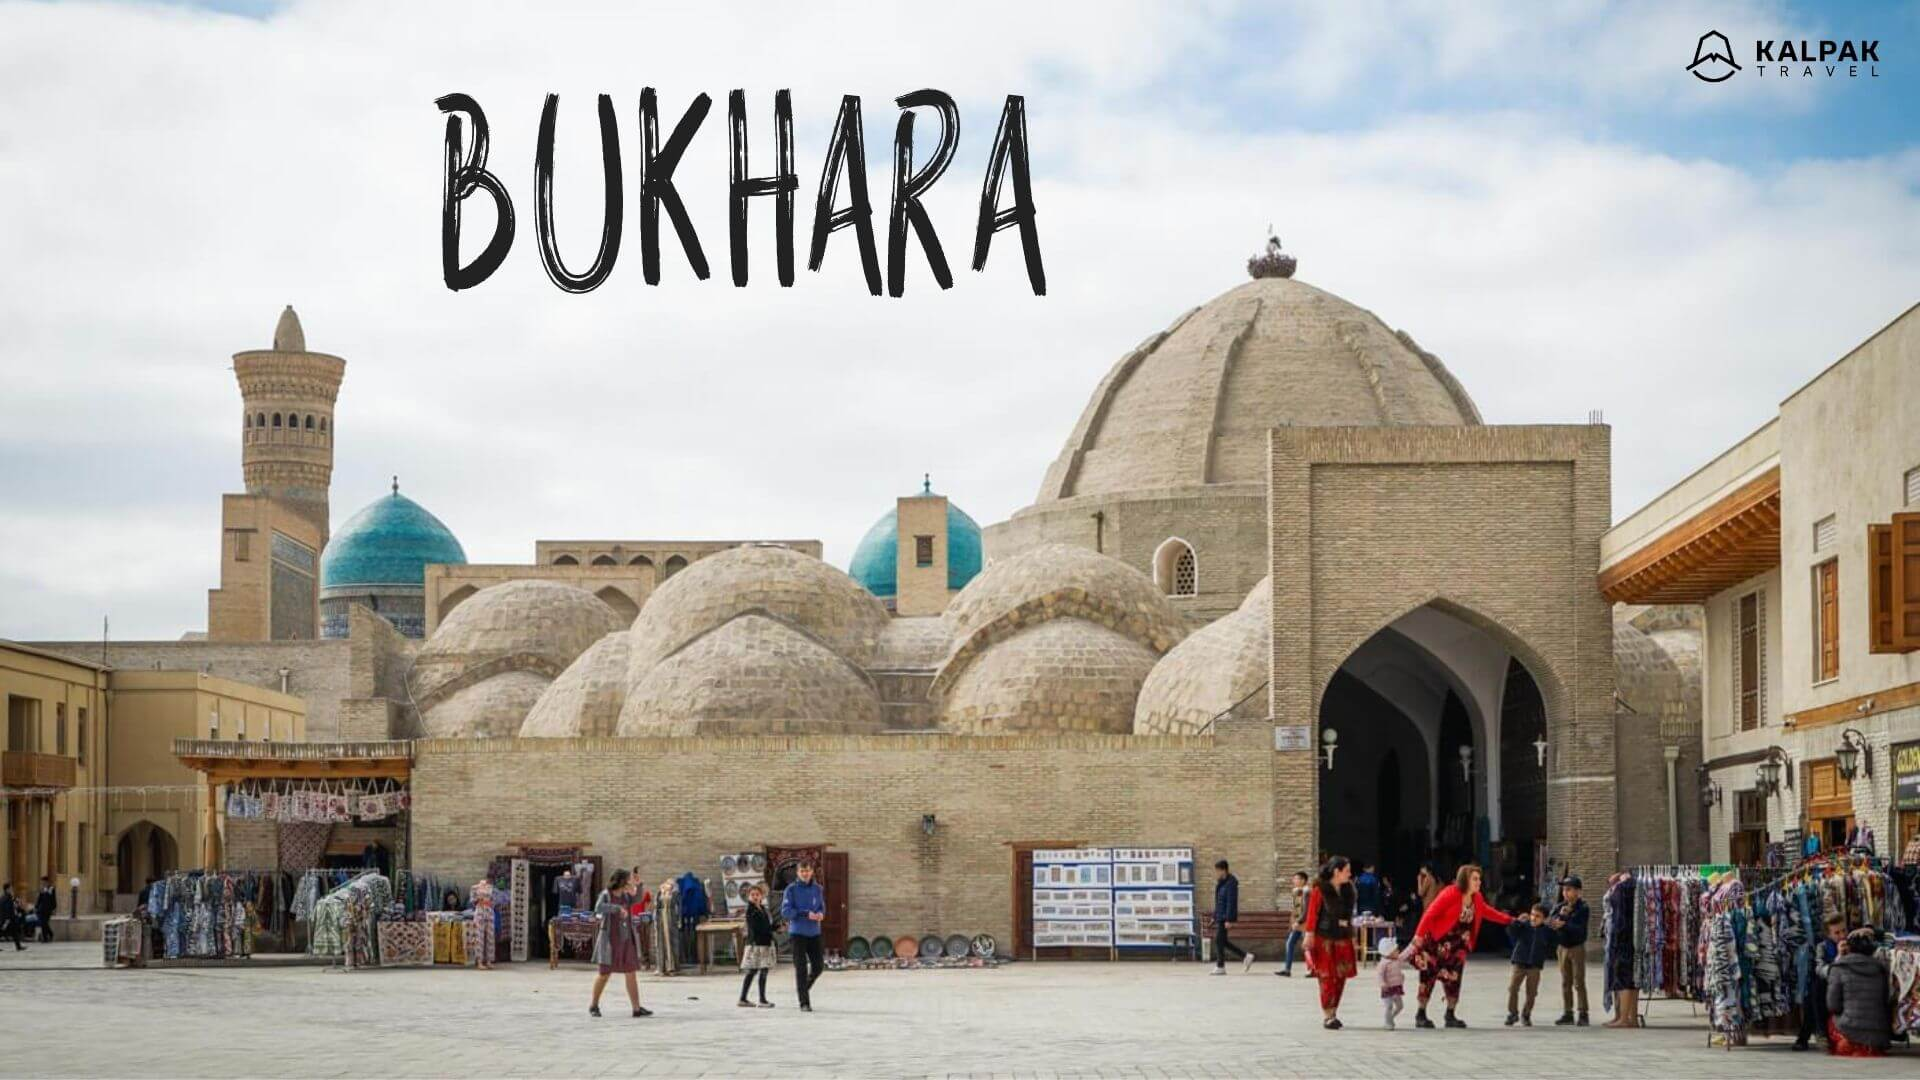 Bukhara domes with covered market in Uzbekistan